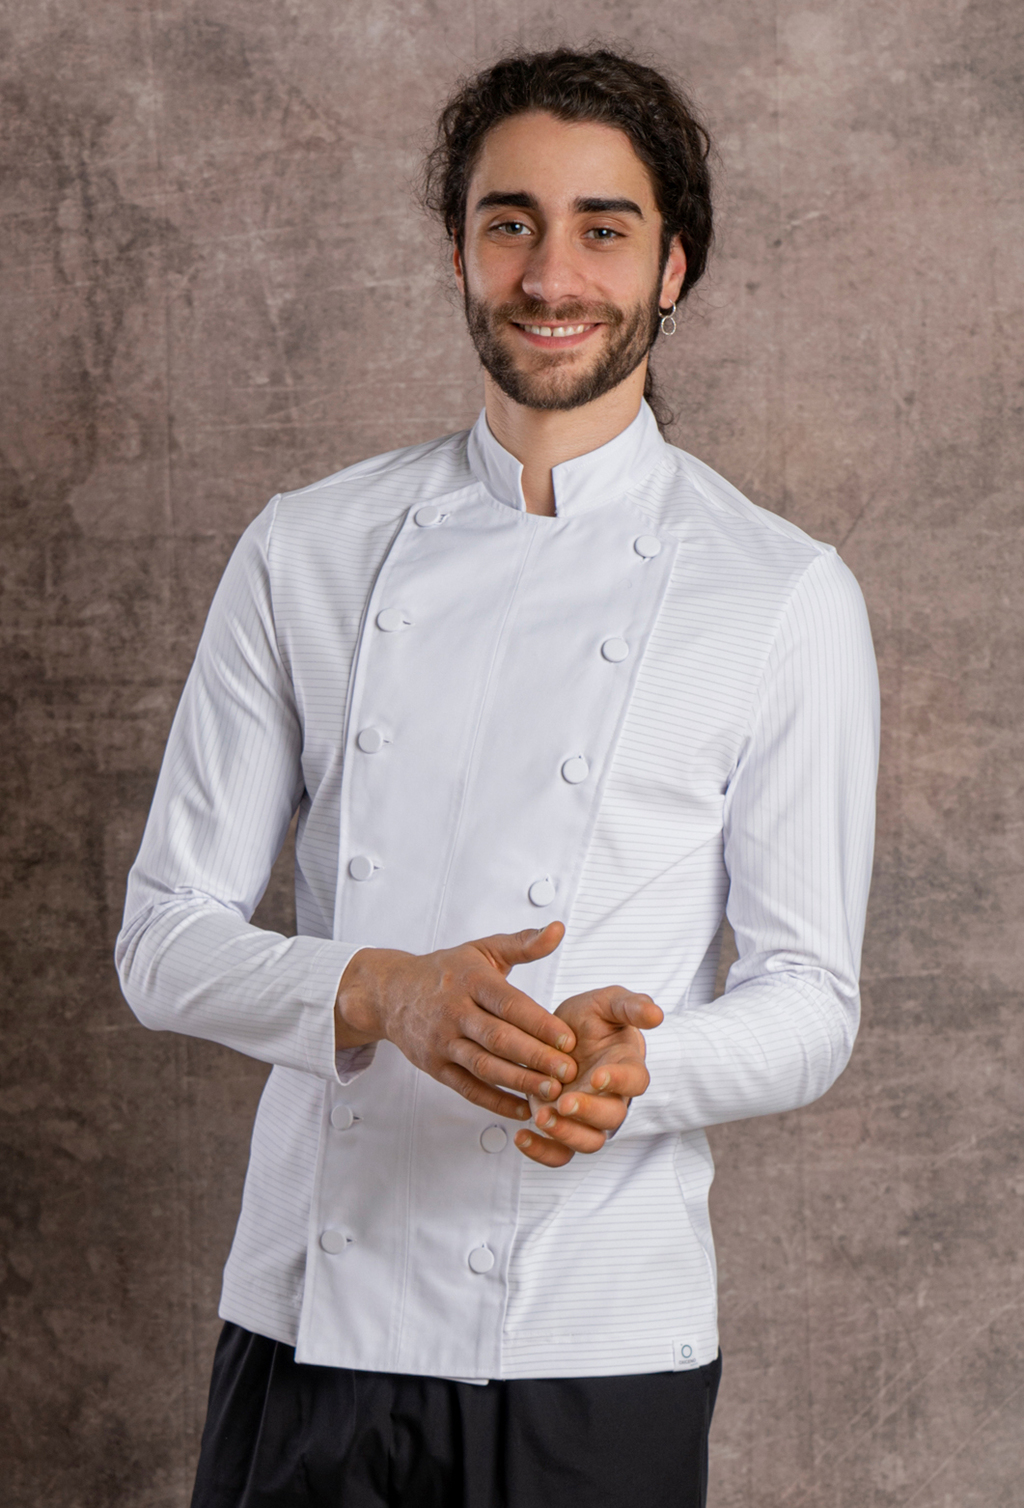 MEN'S CHEF JACKET RECYCLED AND CARBONO FABRIC